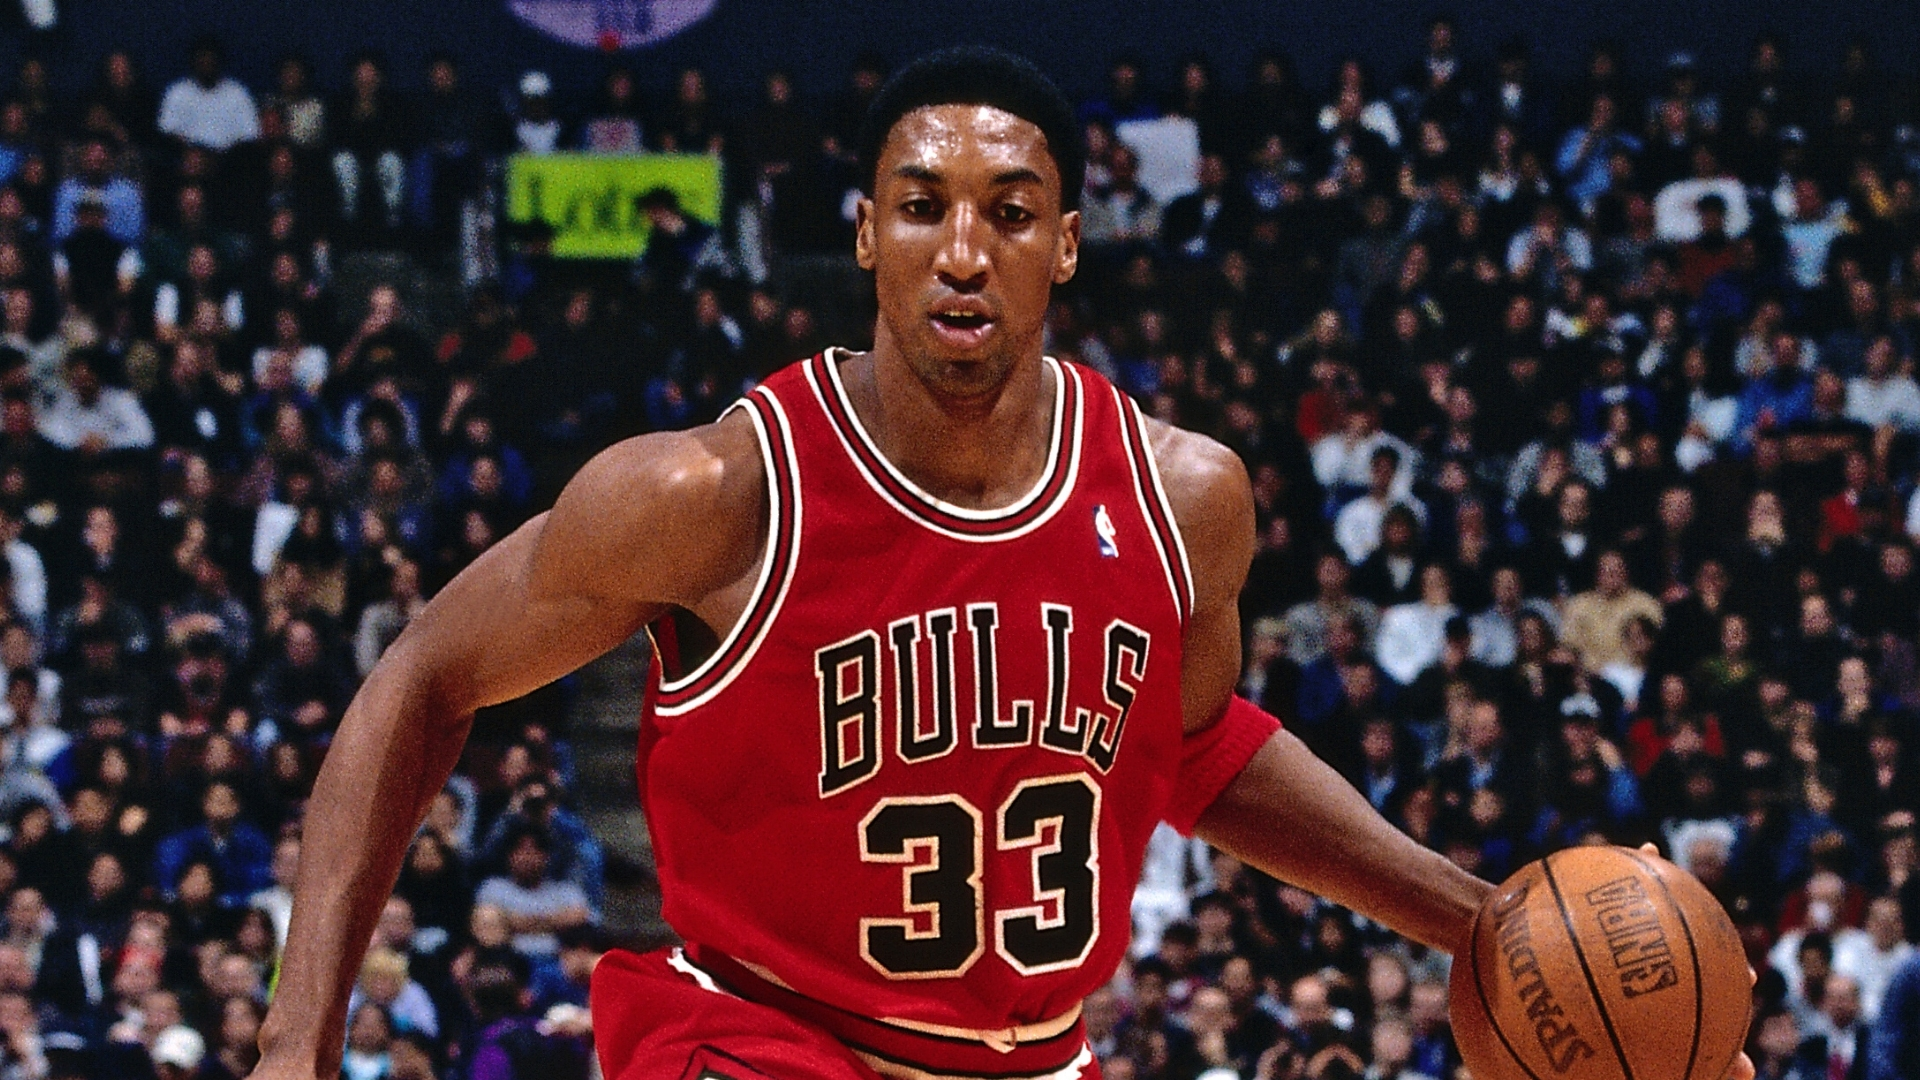 The Last Dance A Look At Scottie Pippen S Contract And Why Was He Just The Sixth Highest Paid Player On The Chicago Bulls Nba Com Australia The Official Site Of The Nba